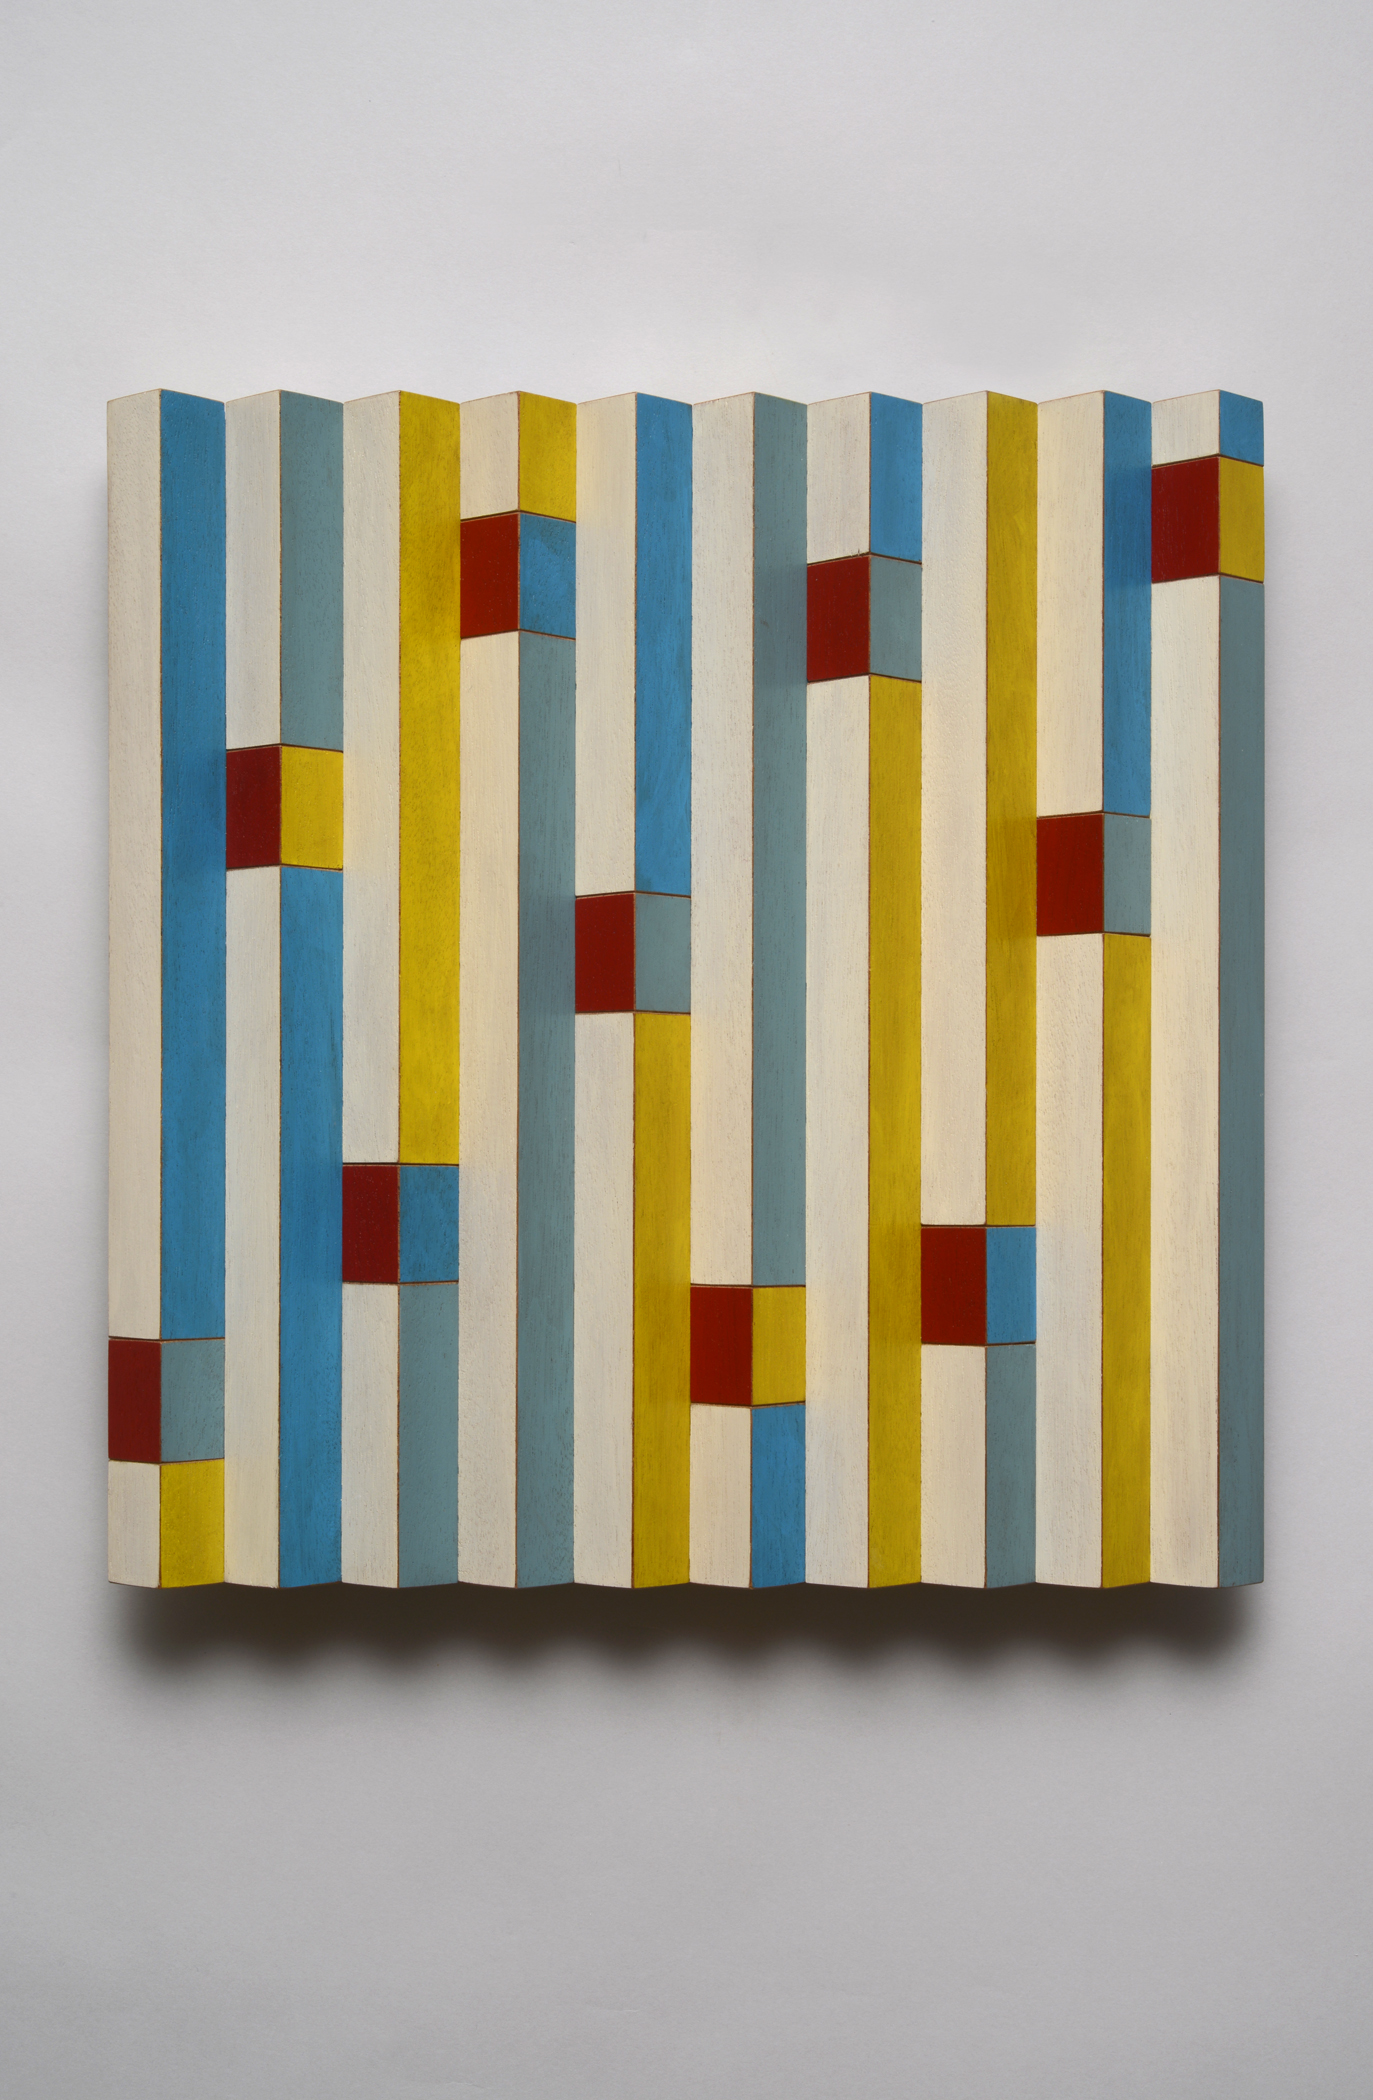 "Signals (Center)  Emi Ozawa, 2014  Acrylic on Mahogany  11 7/8""H x 11 5/8""W x 1 1/2""D"